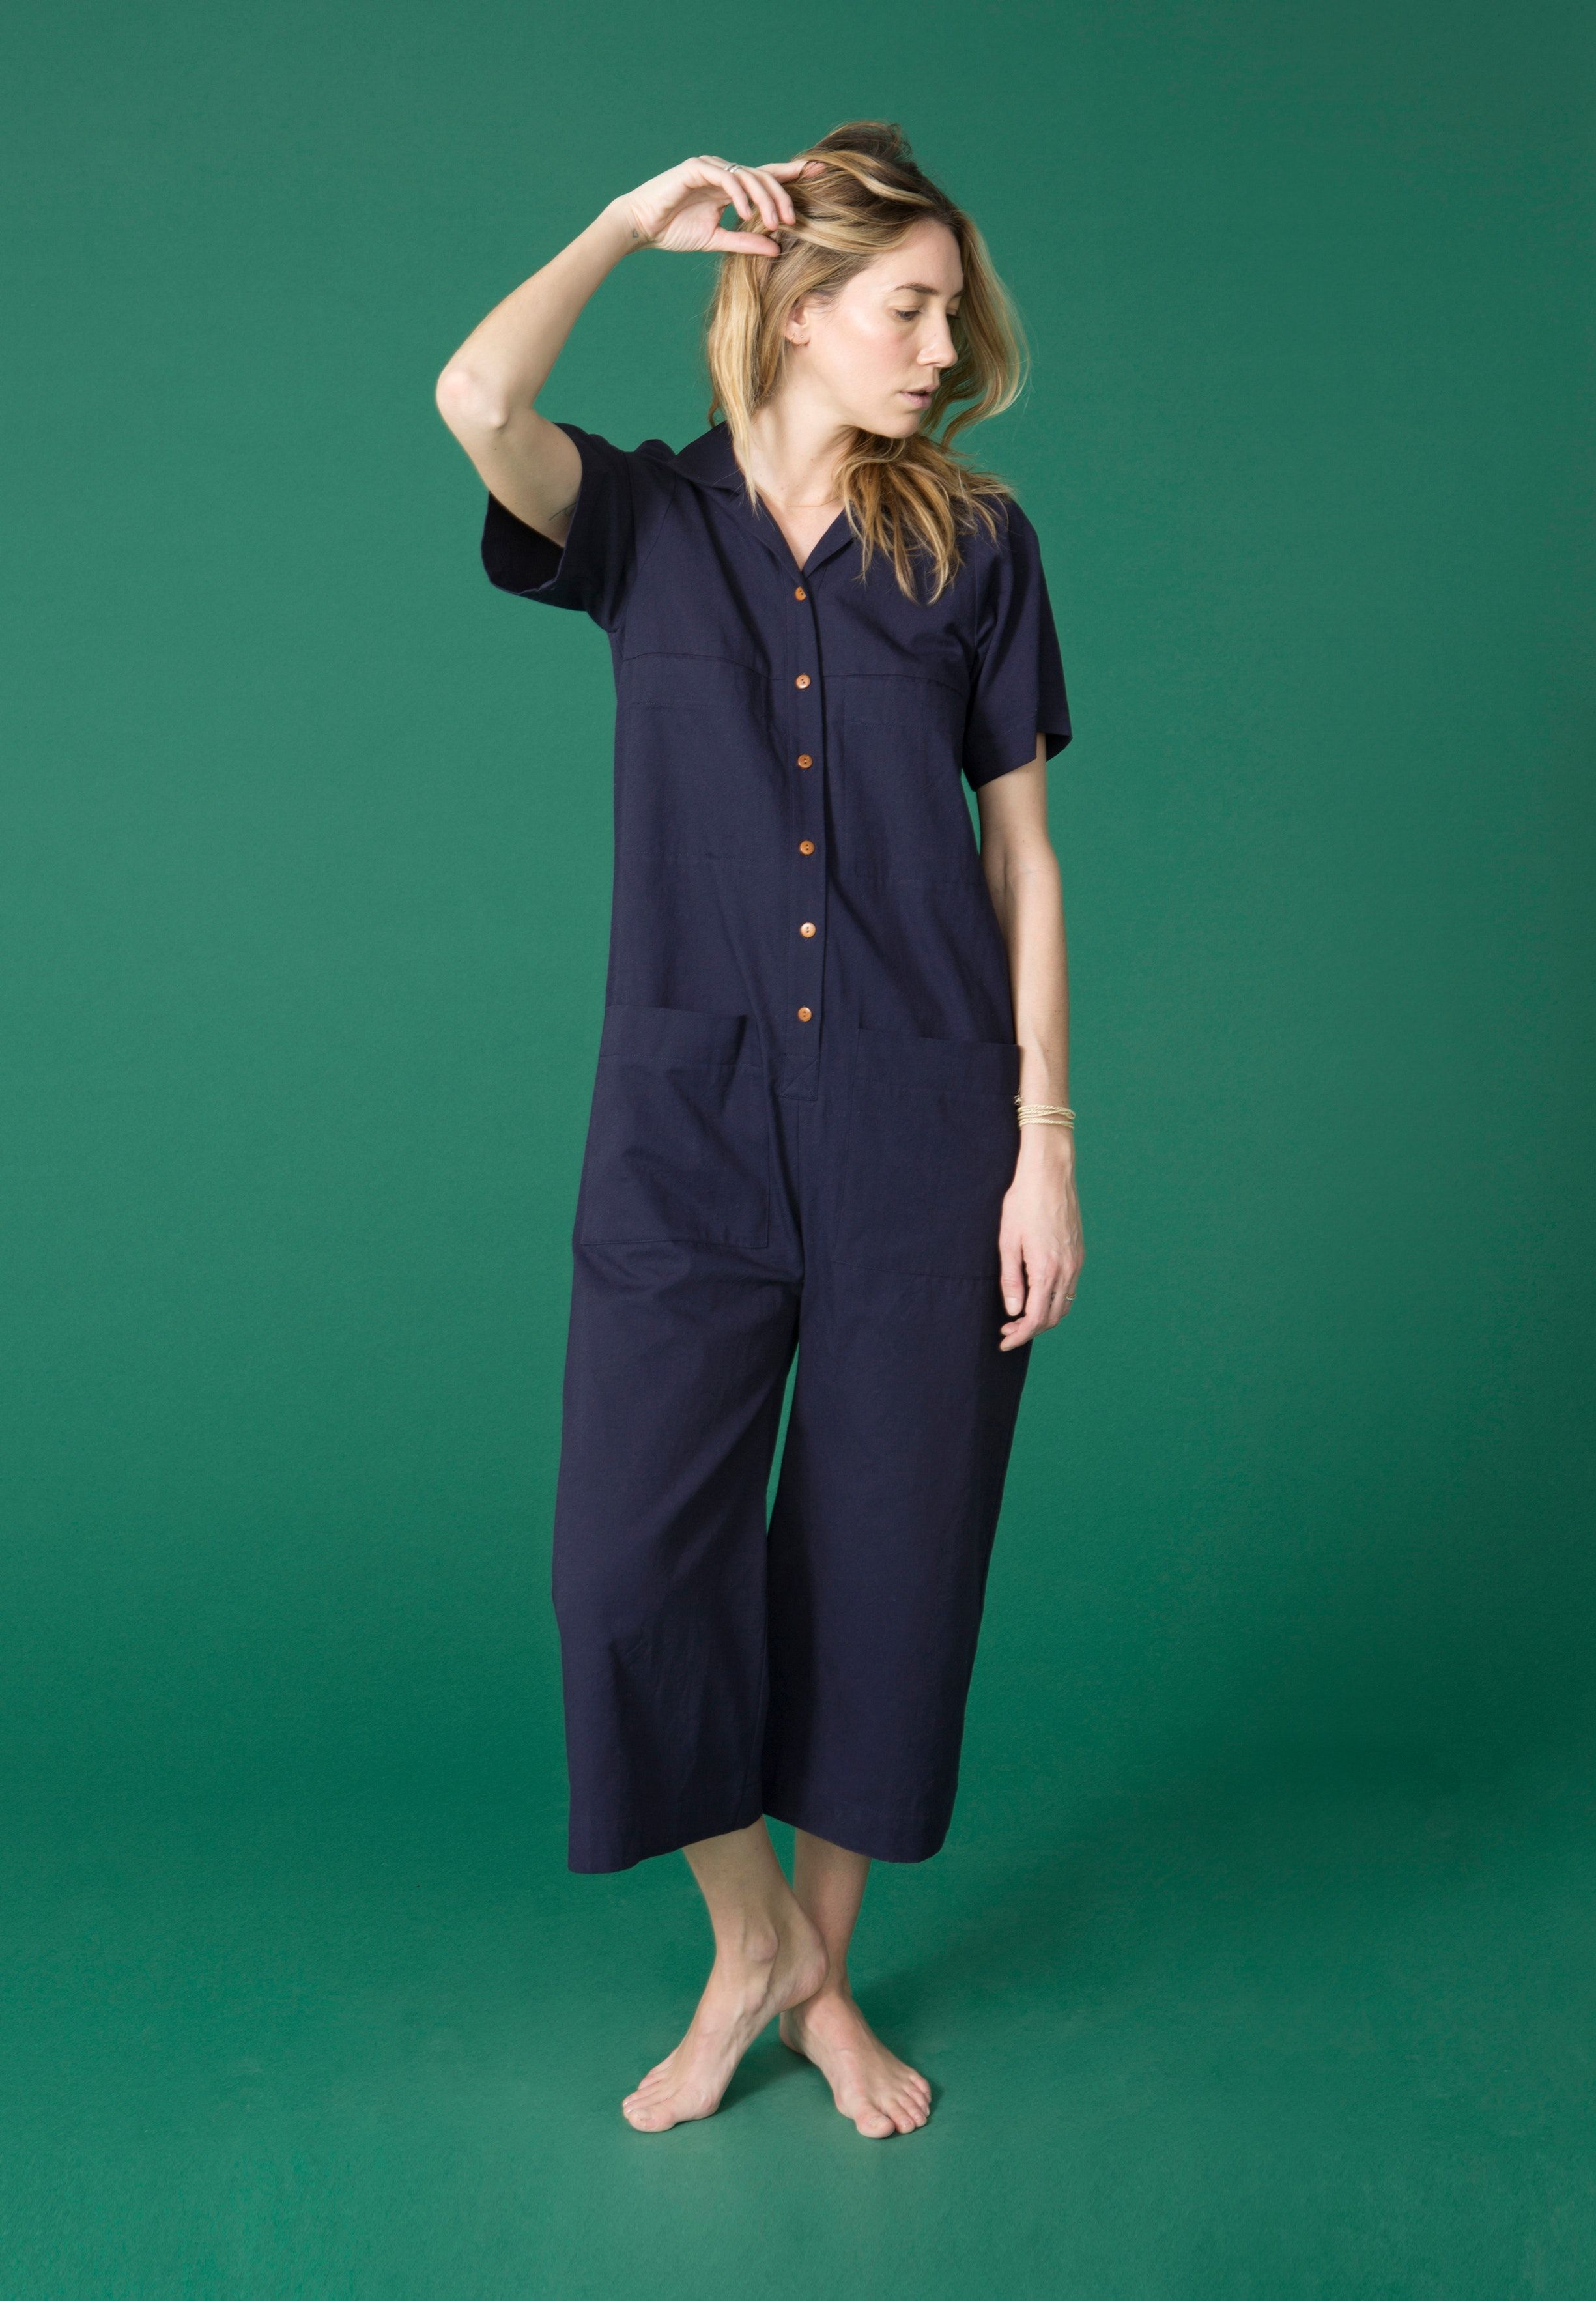 34b981dea78 The Mabel coverall from Ilana Kohn does all the work so you can focus on  more important things, like accessories. Wear it to work, for play or even  lounging ...